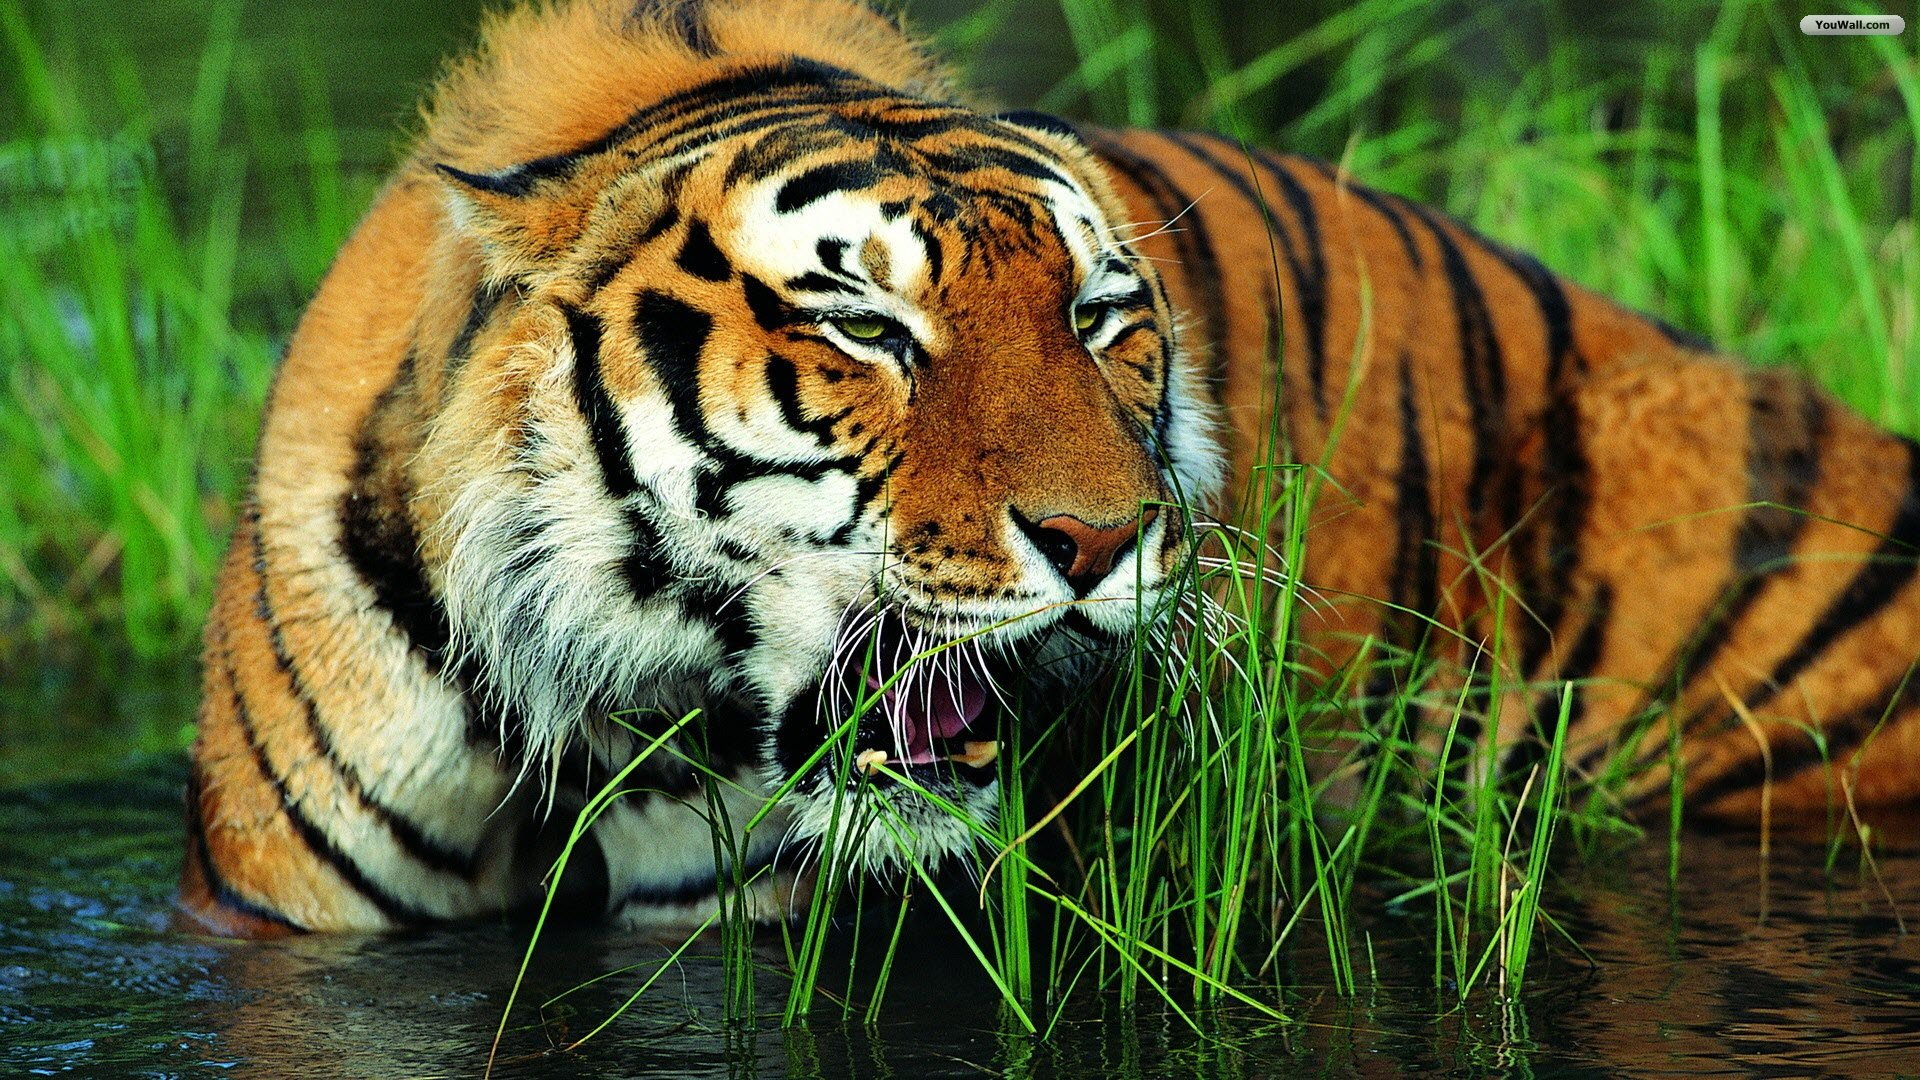 Tiger Live Wallpaper Android Apps On Google Play 1920x1080